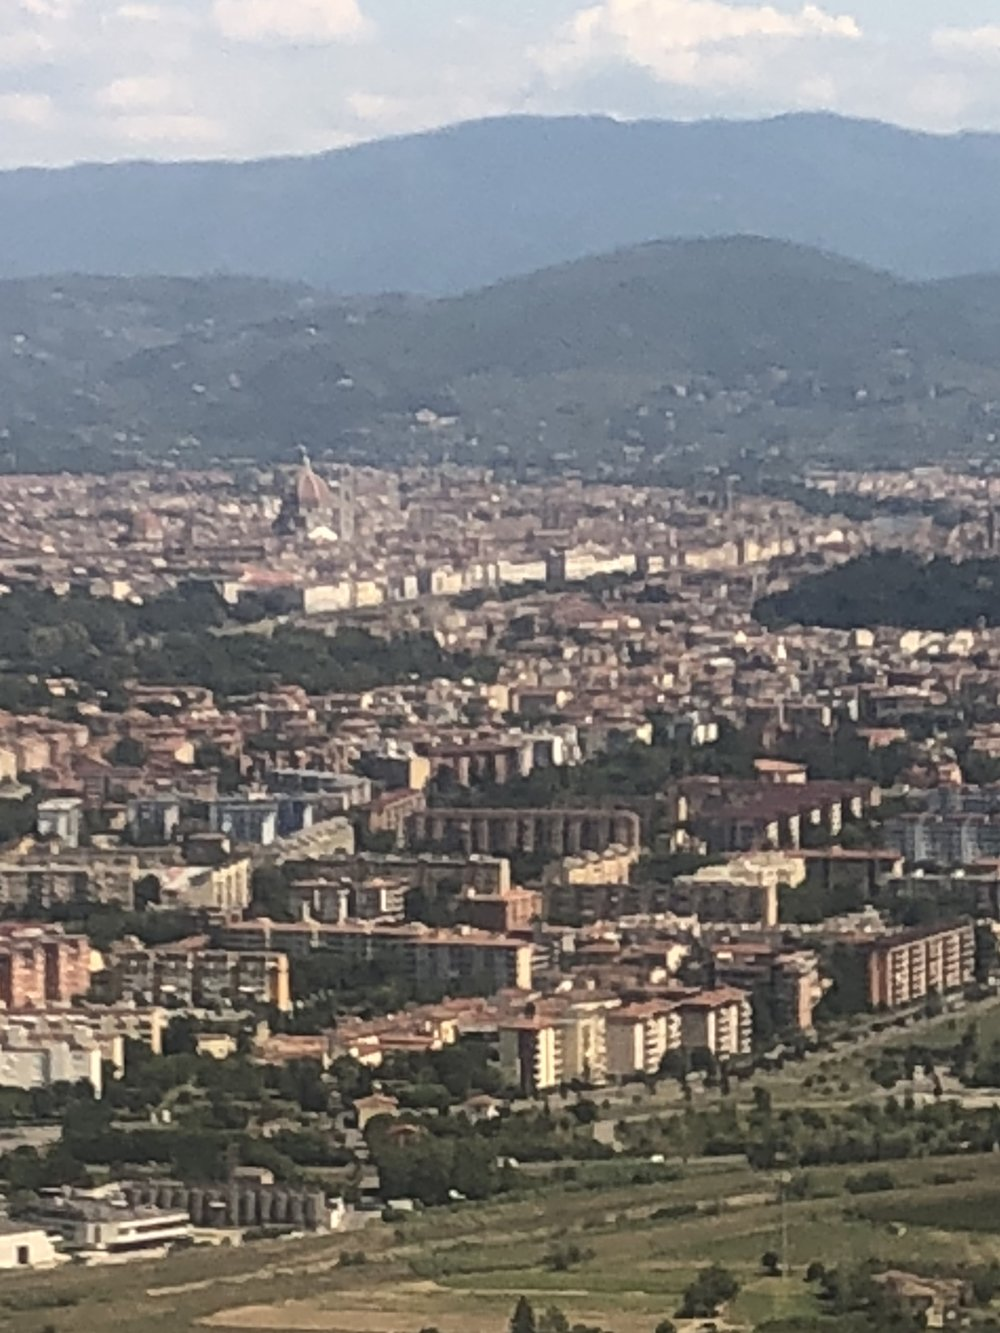 View of Florence from the plane.